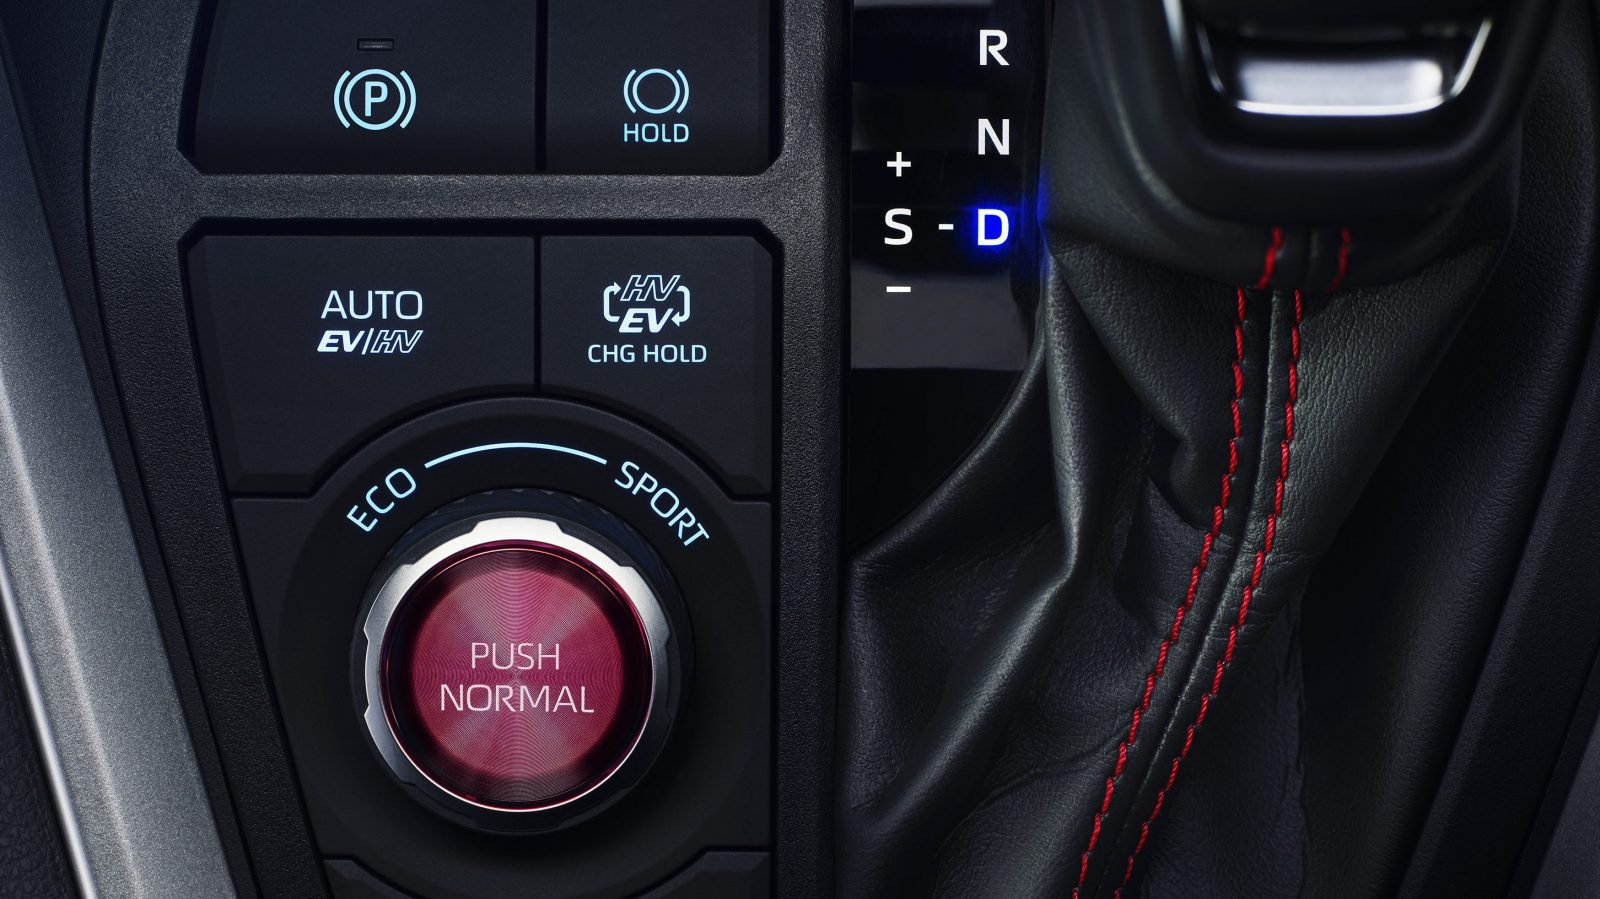 Toyota RAV4 Plug-in Hybrid - buttons on centre console